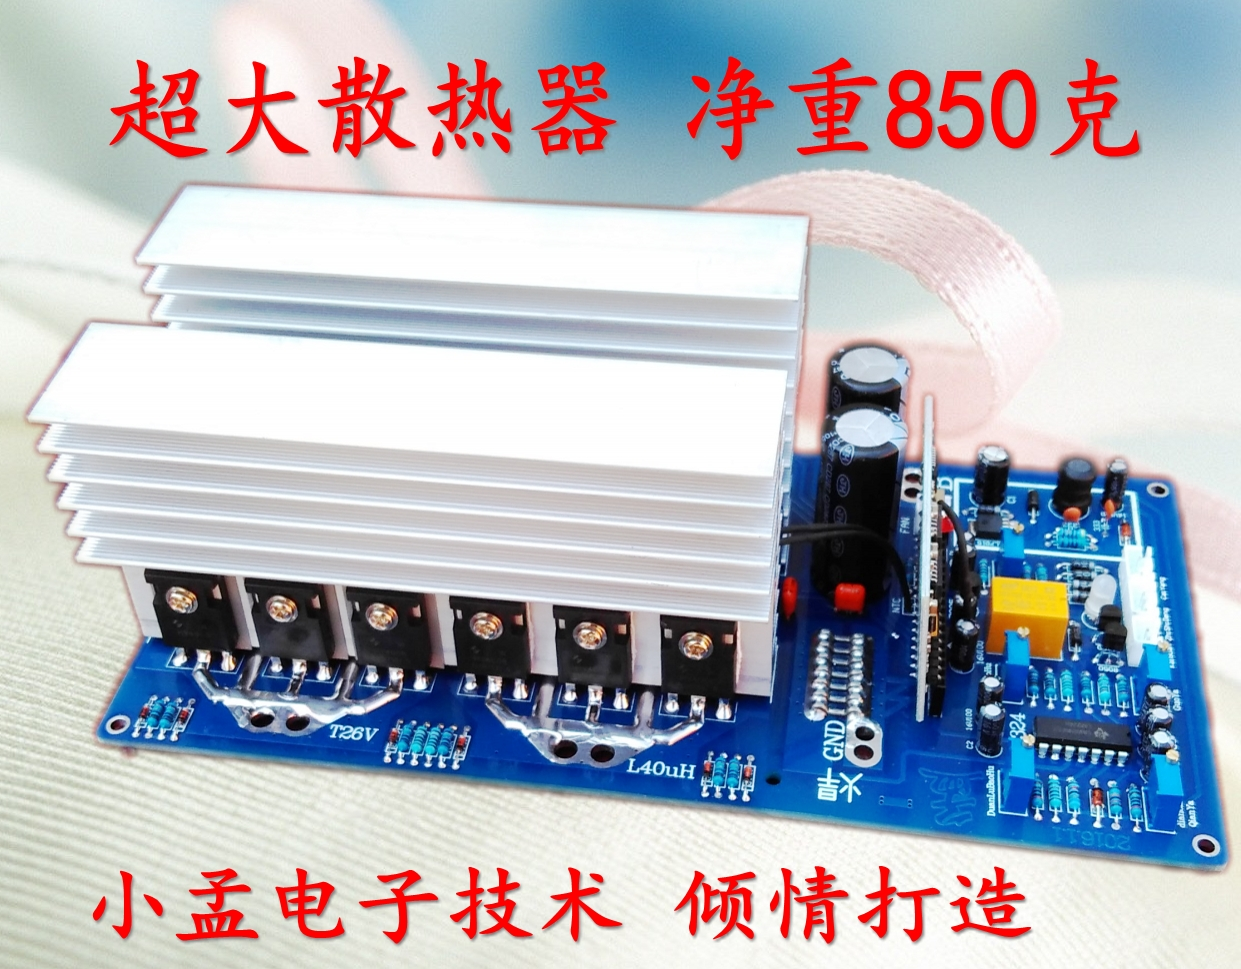 24v36v48v60v3kva4kva5kva6kva Frequency Pure Sine Wave Inverter Board Circuit Digram With Code Main In Air Conditioner Parts From Home Appliances On